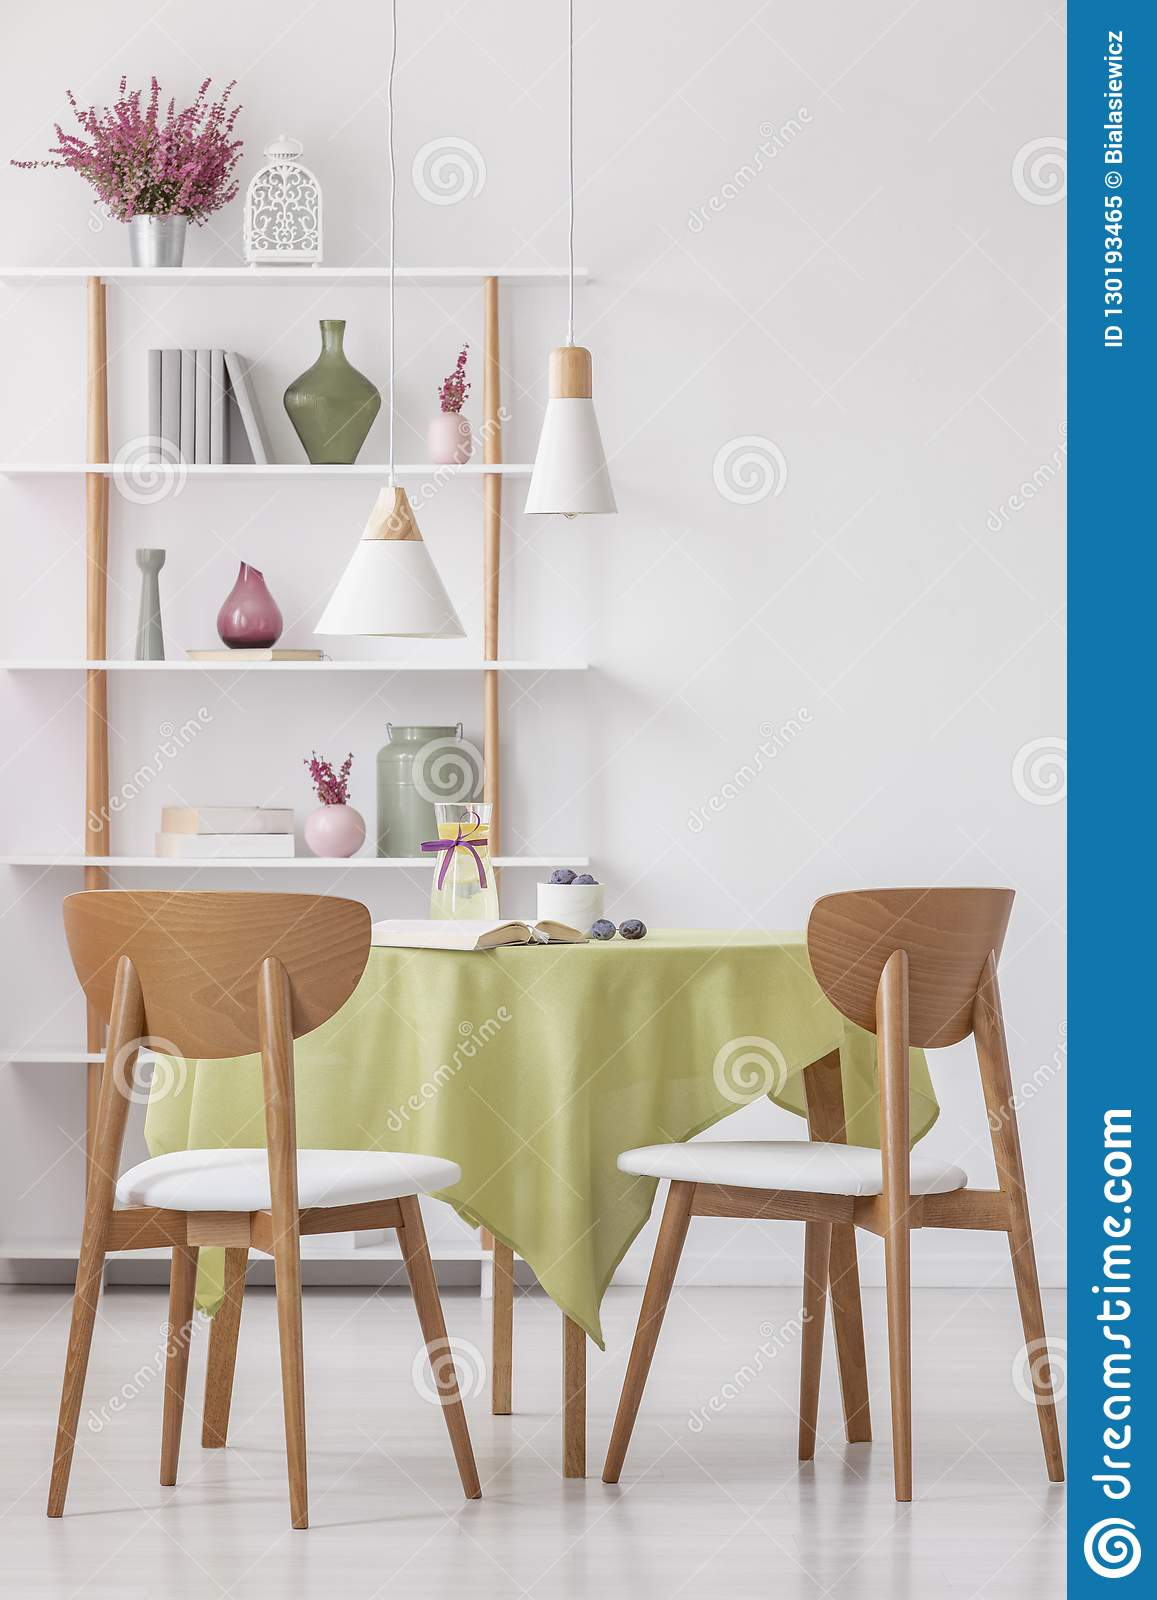 Wooden Chairs At Round Table With Olive Green Tablecloth In Bright